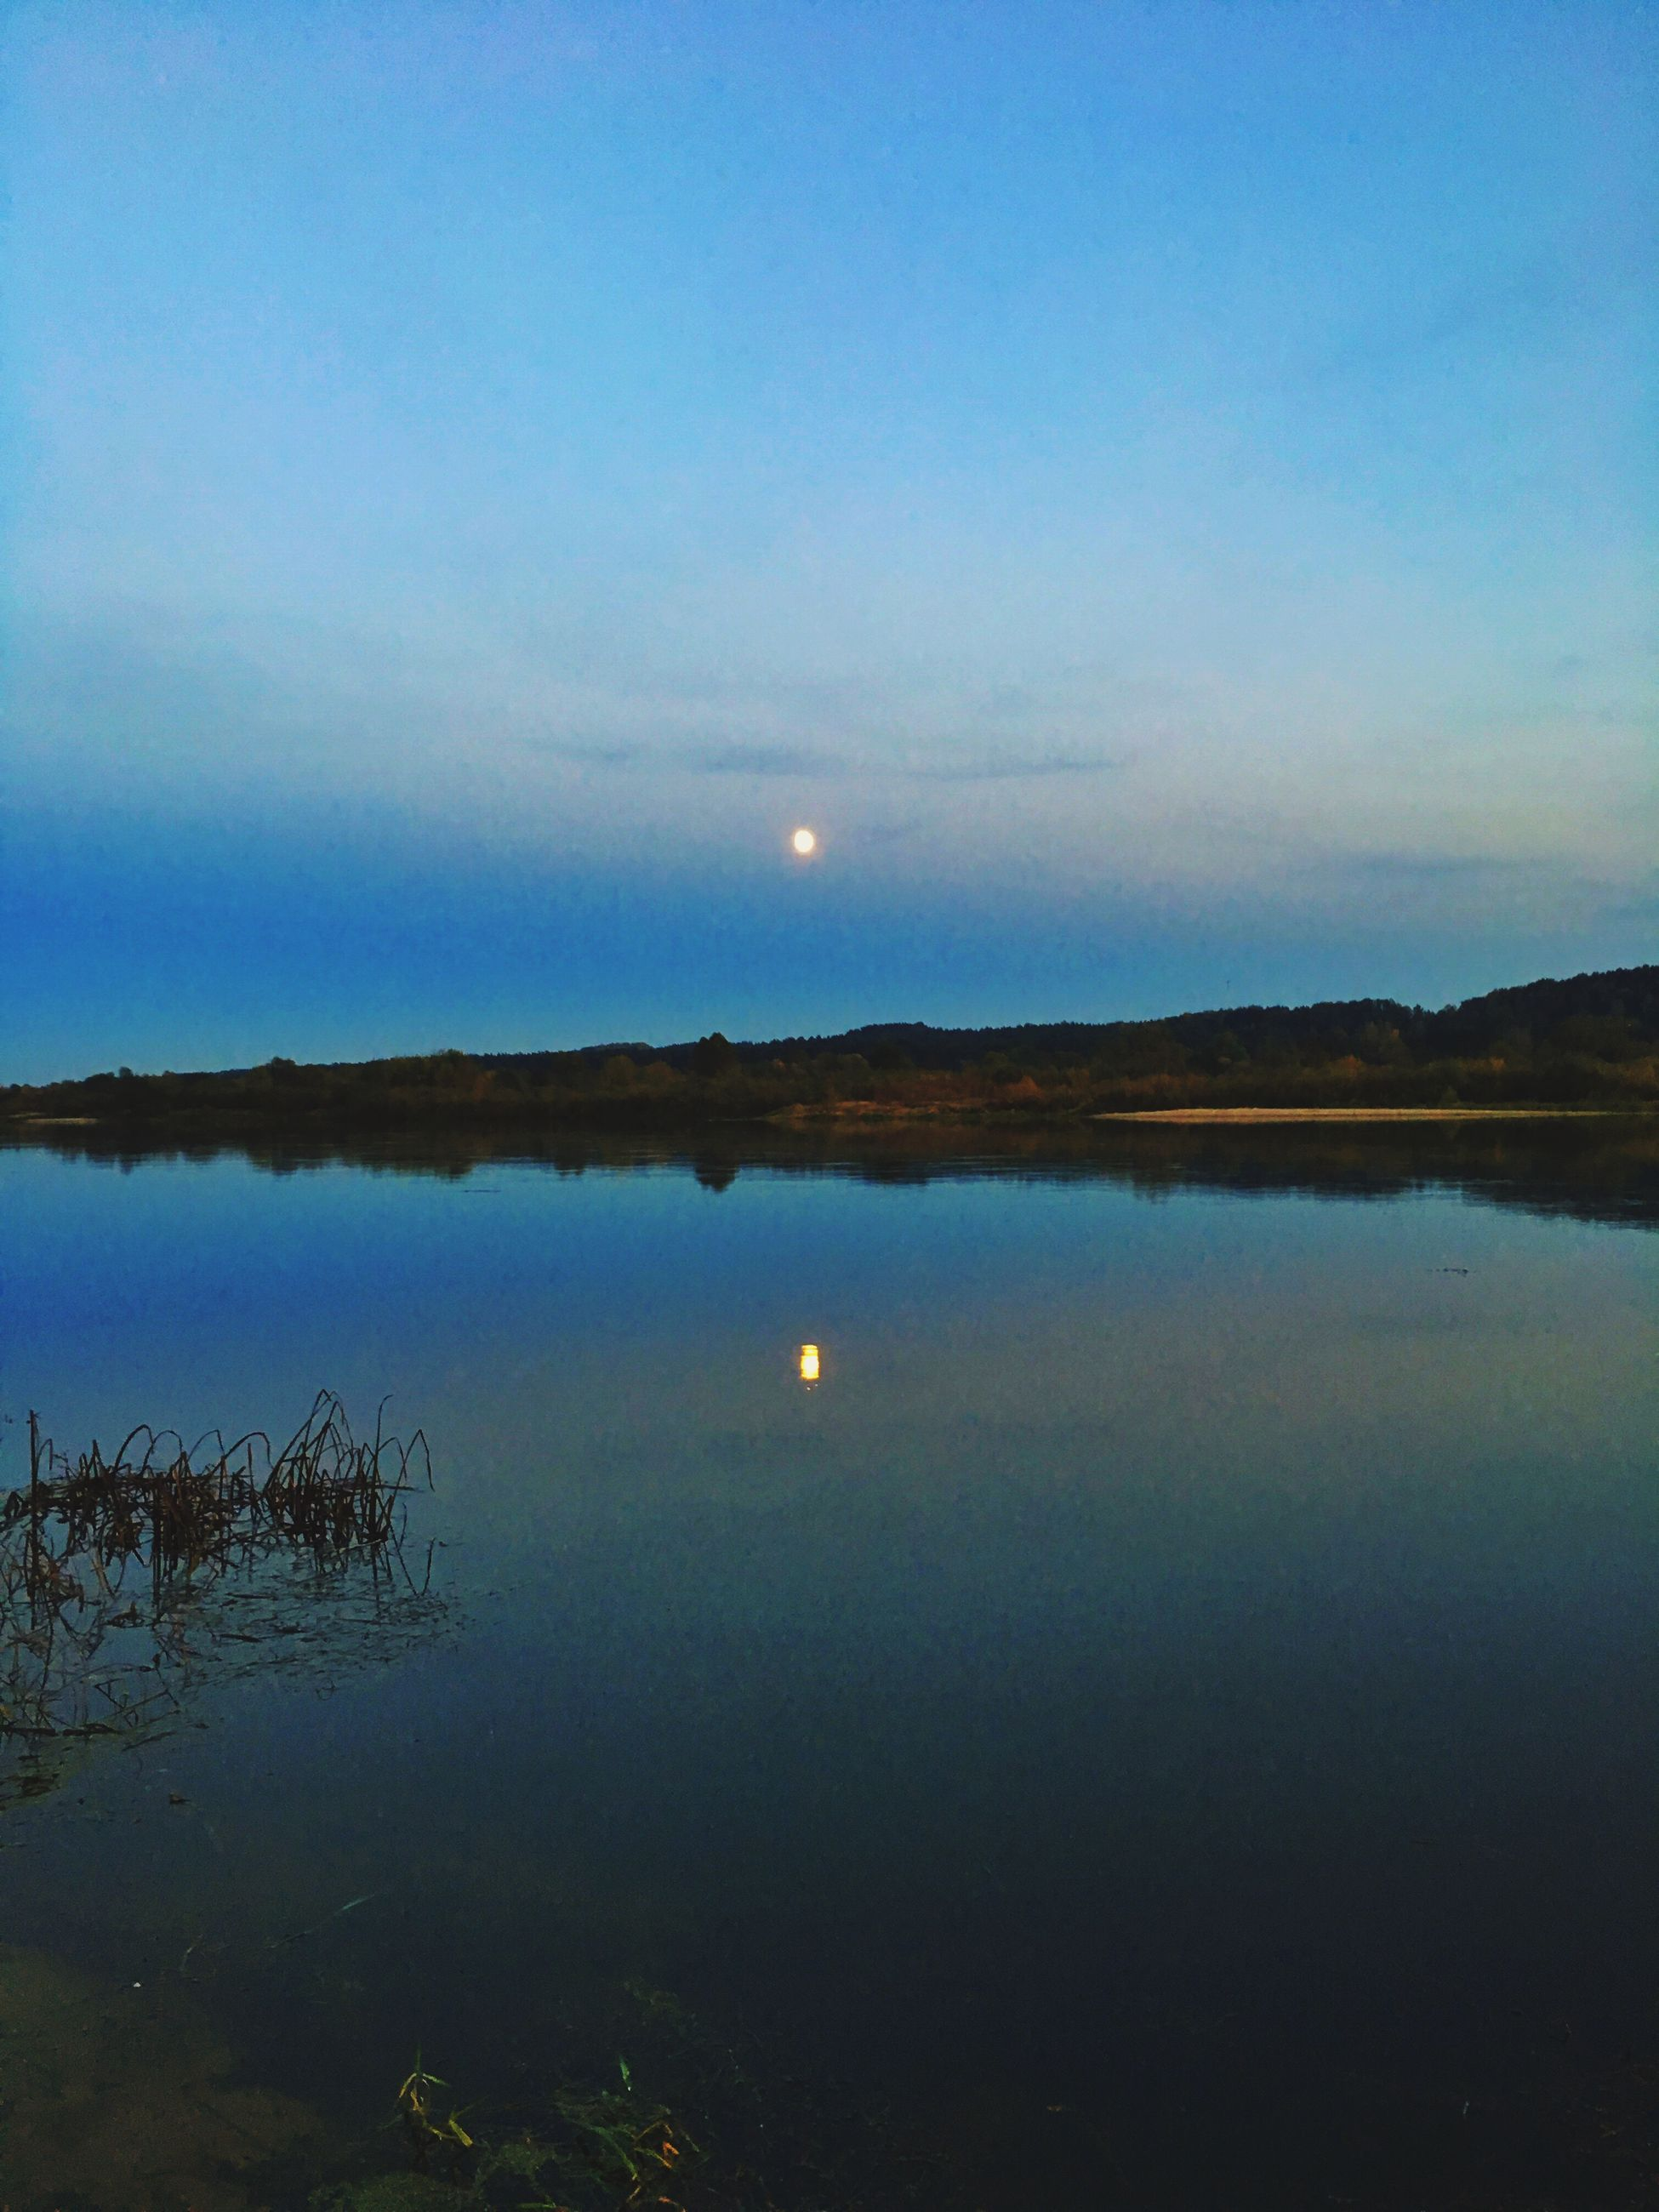 reflection, sky, nature, water, scenics, moon, beauty in nature, tranquility, no people, tranquil scene, outdoors, astronomy, day